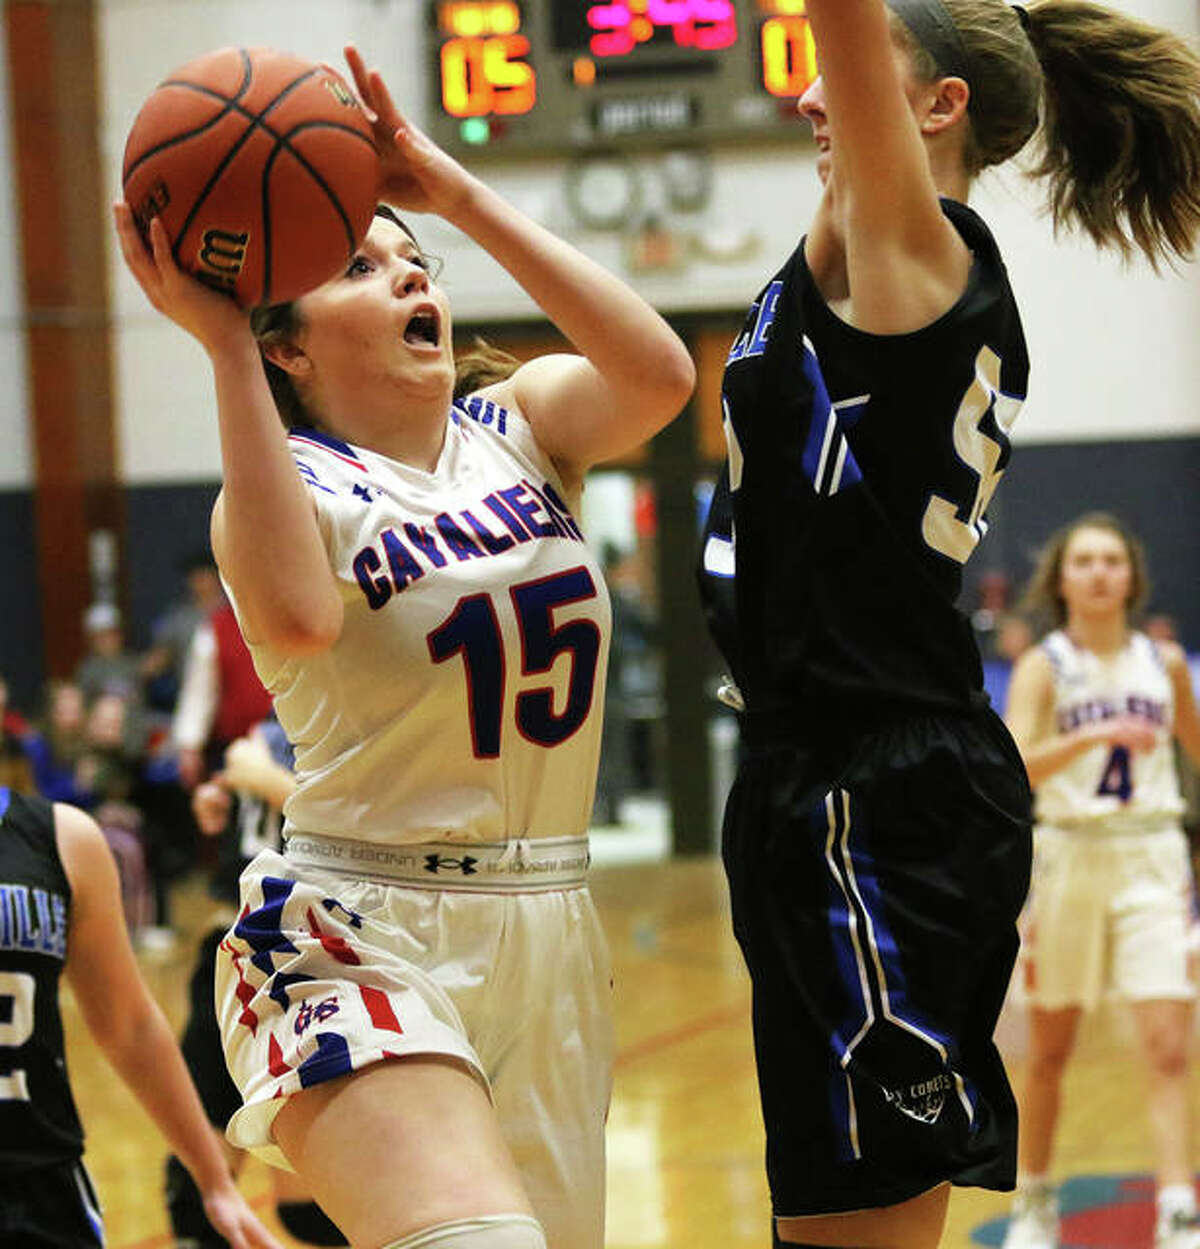 Carlinville's Gracie Reels (15) scored 15 points to help Carlinville to a 56-25 win over Kincade South Fork Friday night.